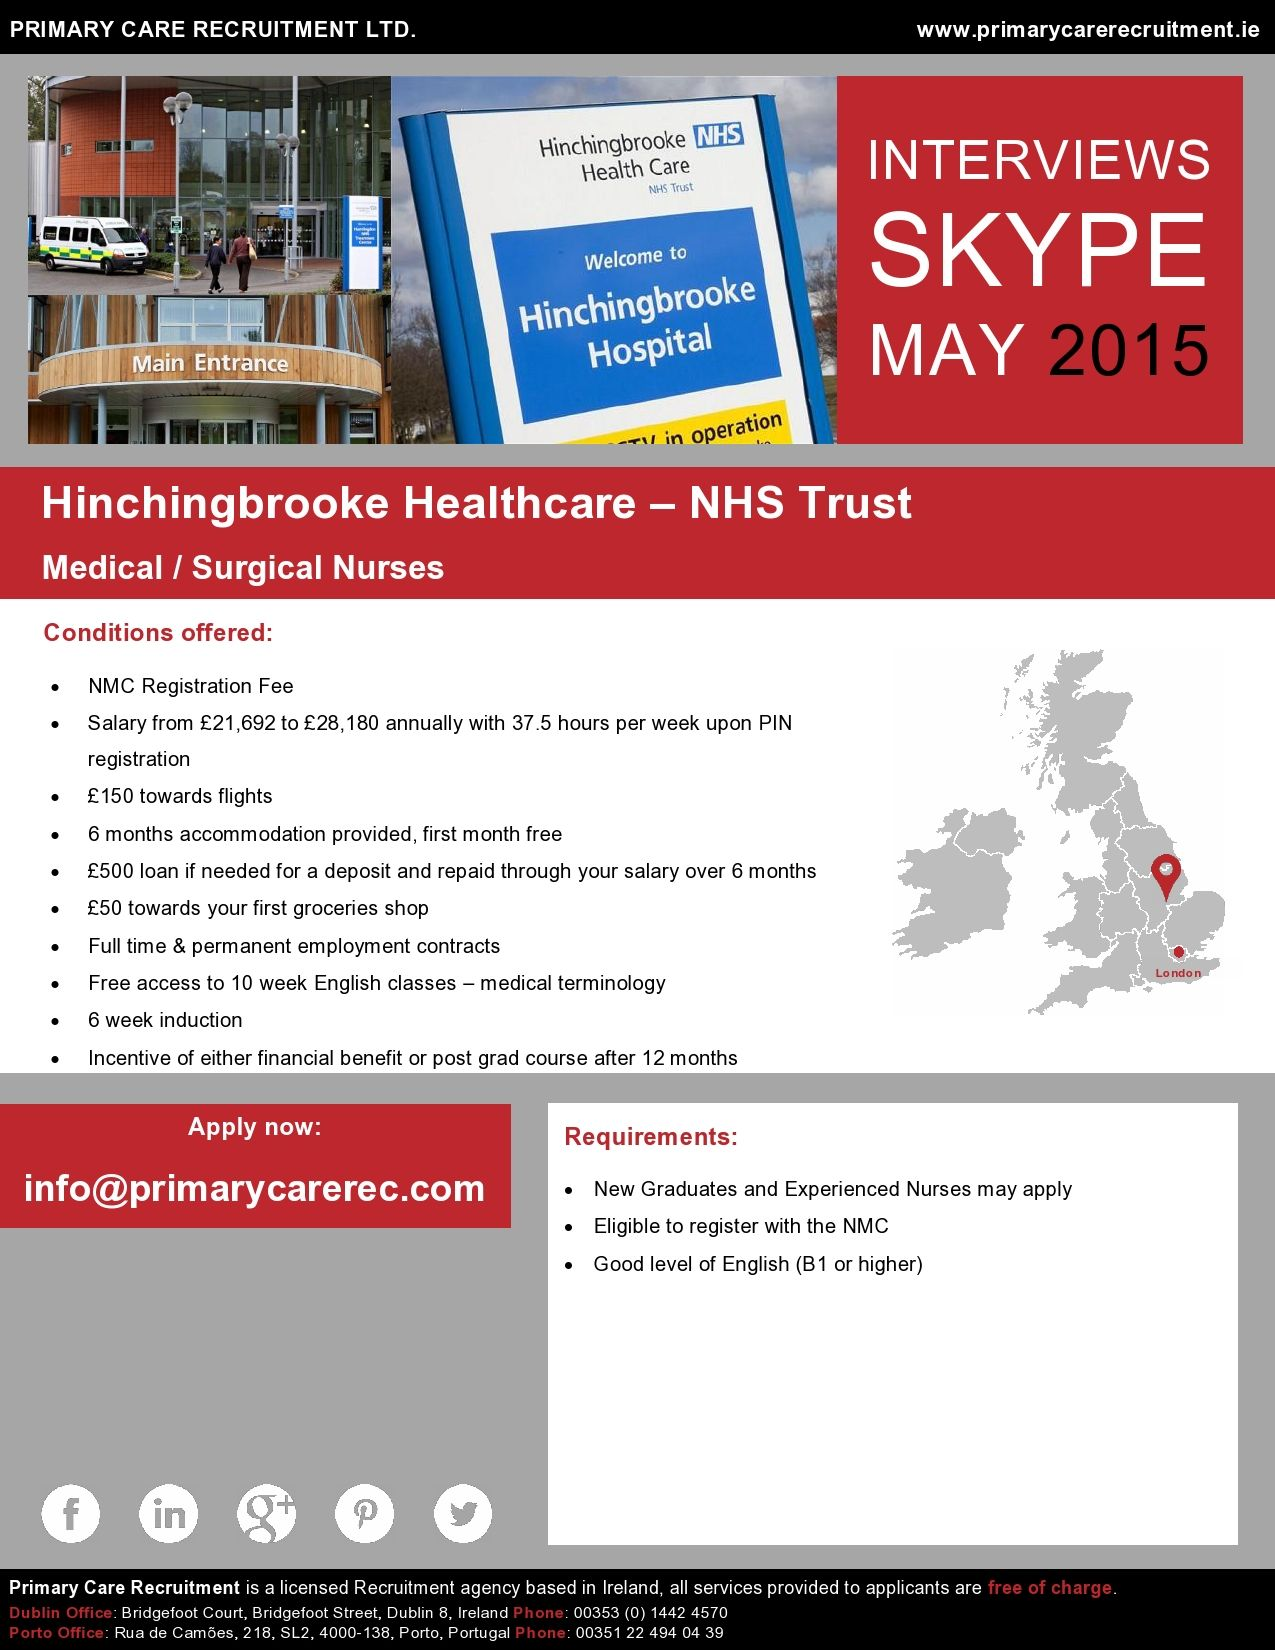 7045955af2918d6136b017aef078fd6c - How To Get A Job In The Nhs Without Experience